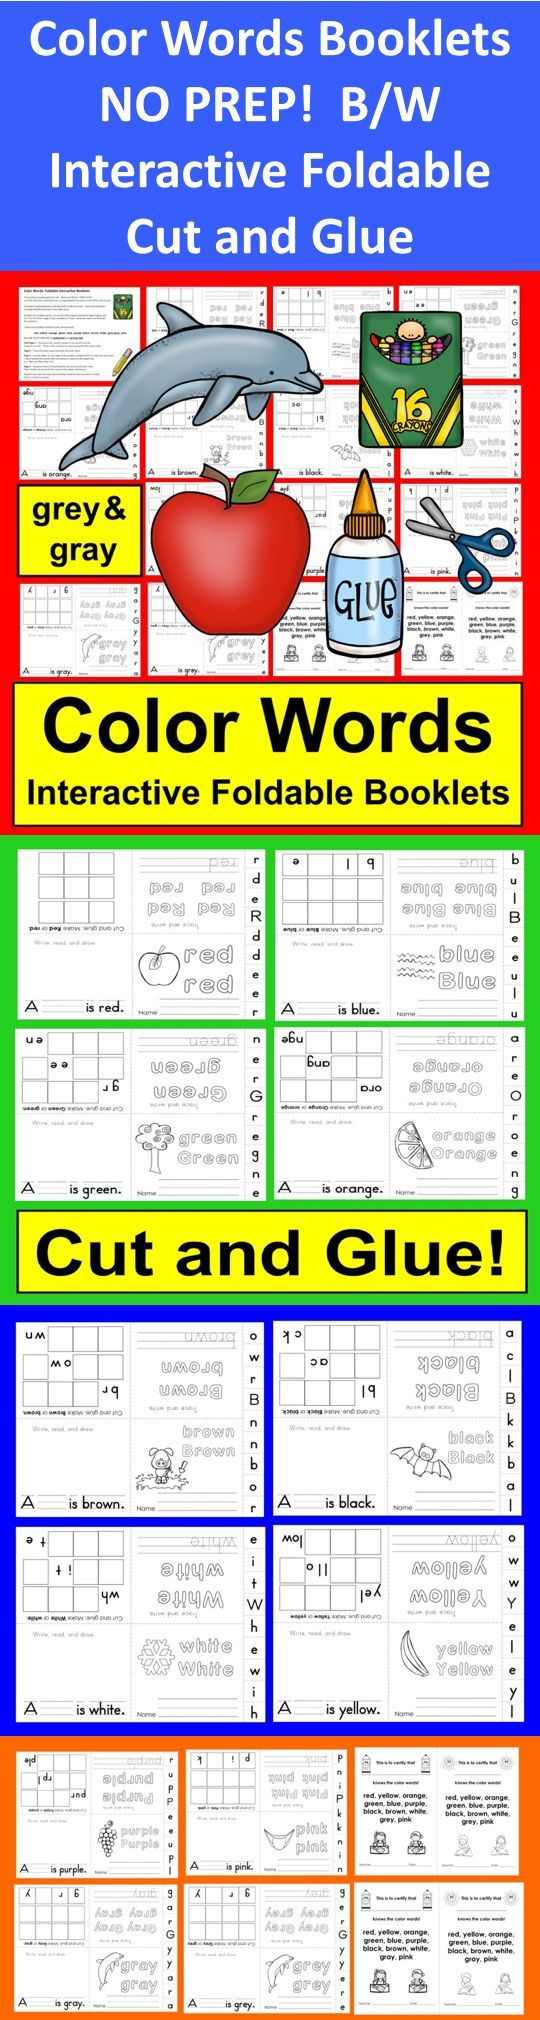 $ Number Booklets – Interactive and Foldable!   ★ Print & Go!   ★ No Prep – Students simply fold once the short way and then once more in half.   ★ Black and white… Save ink!  ★ Includes Optional Award Certificates, too!  ★ PRINT and GO!   One booklet for each number 1 – 12